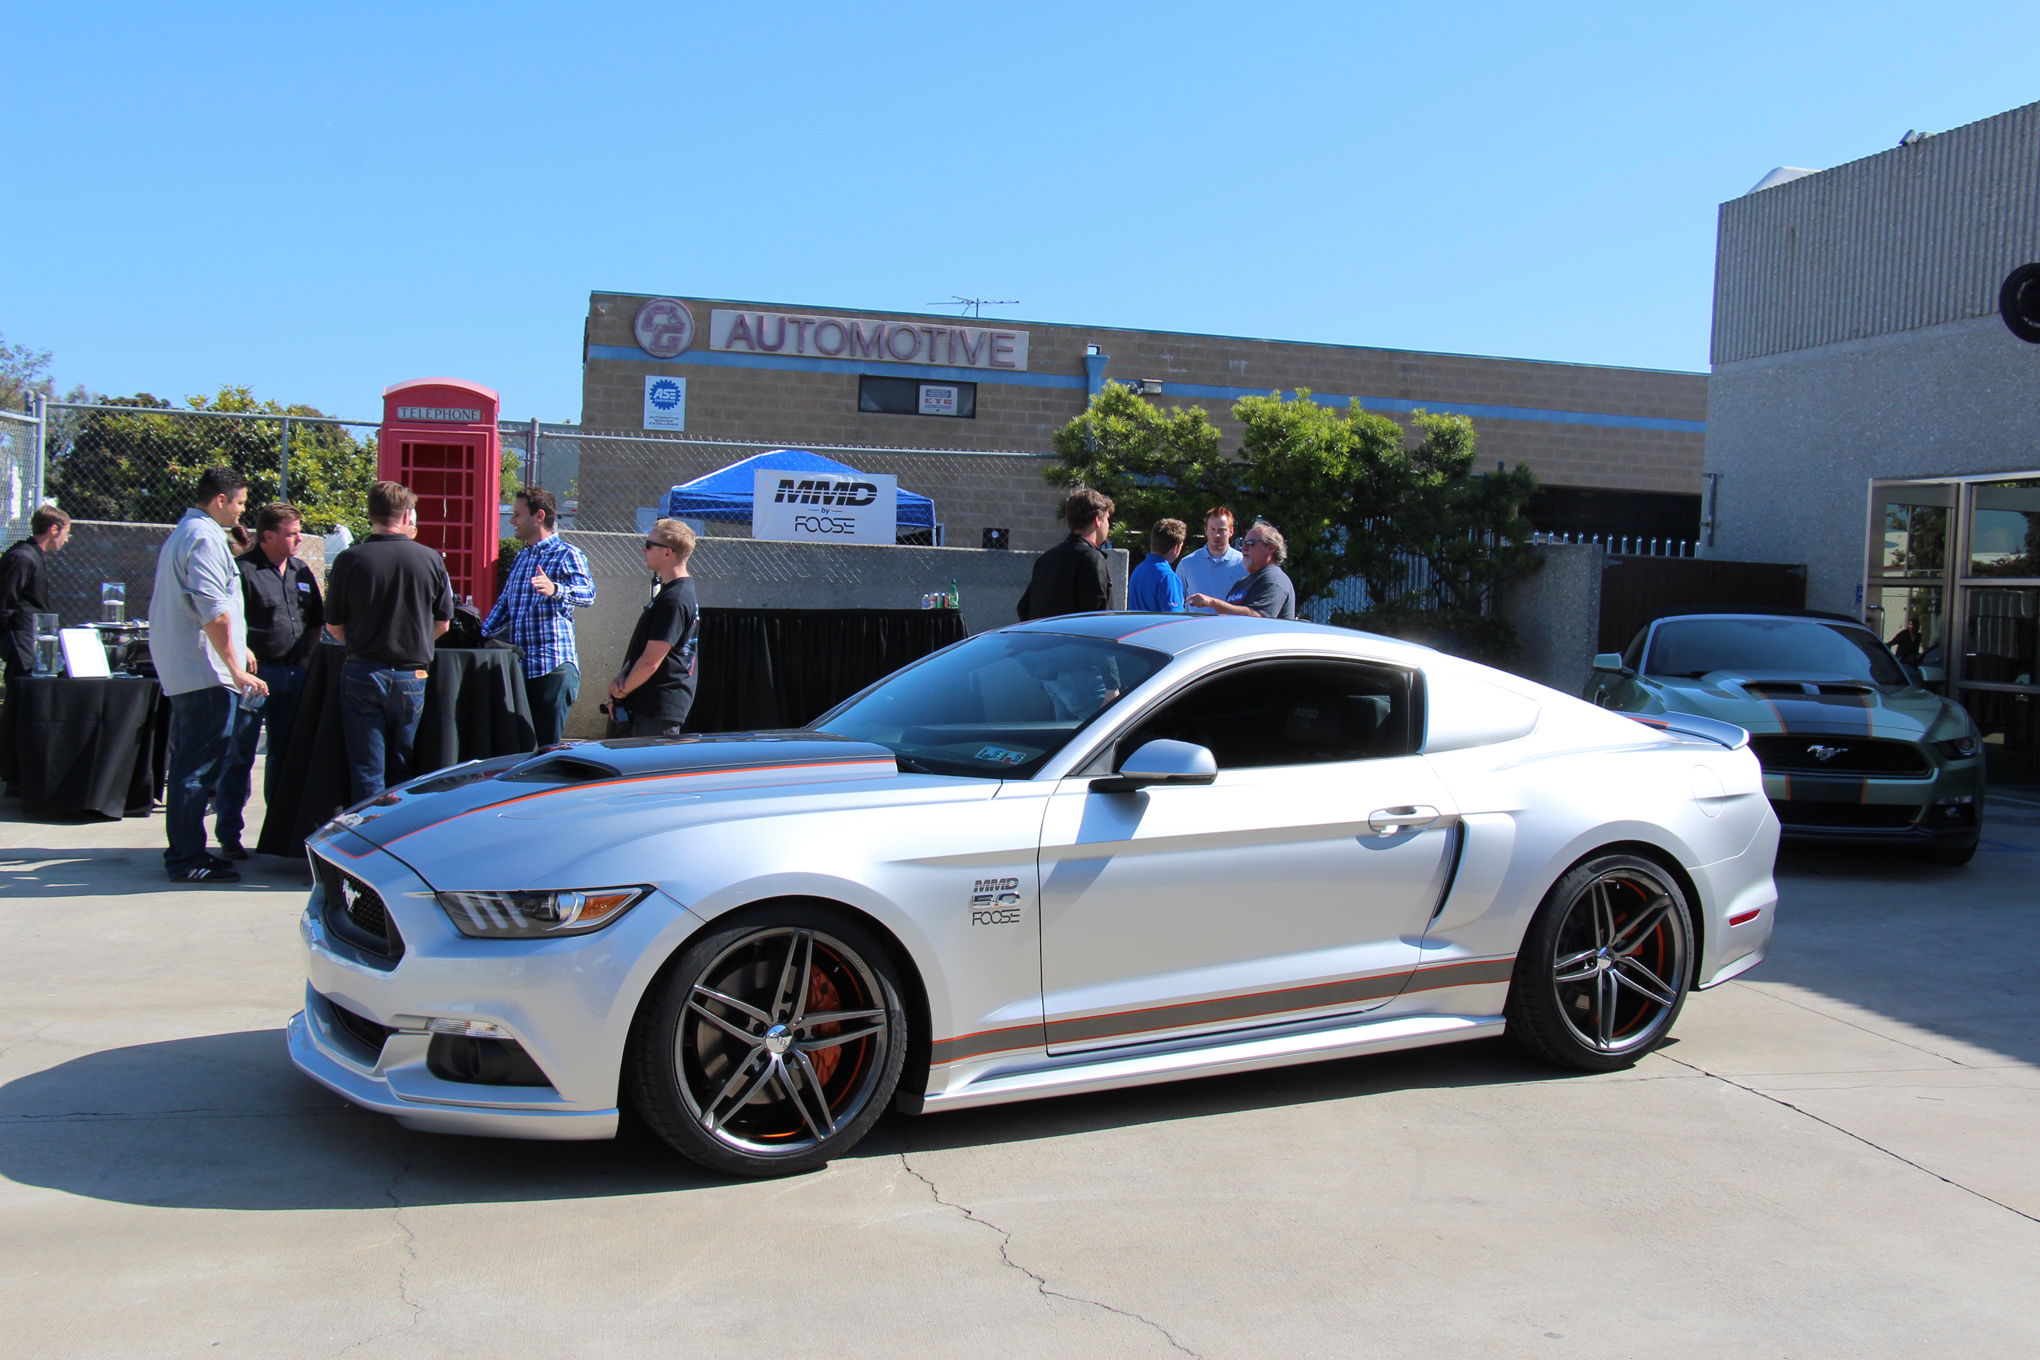 2015 Mustang Gt Pictures We Drive The Mmd By Foose 810 Hp 2015 Ford Mustang Gt Motortrend